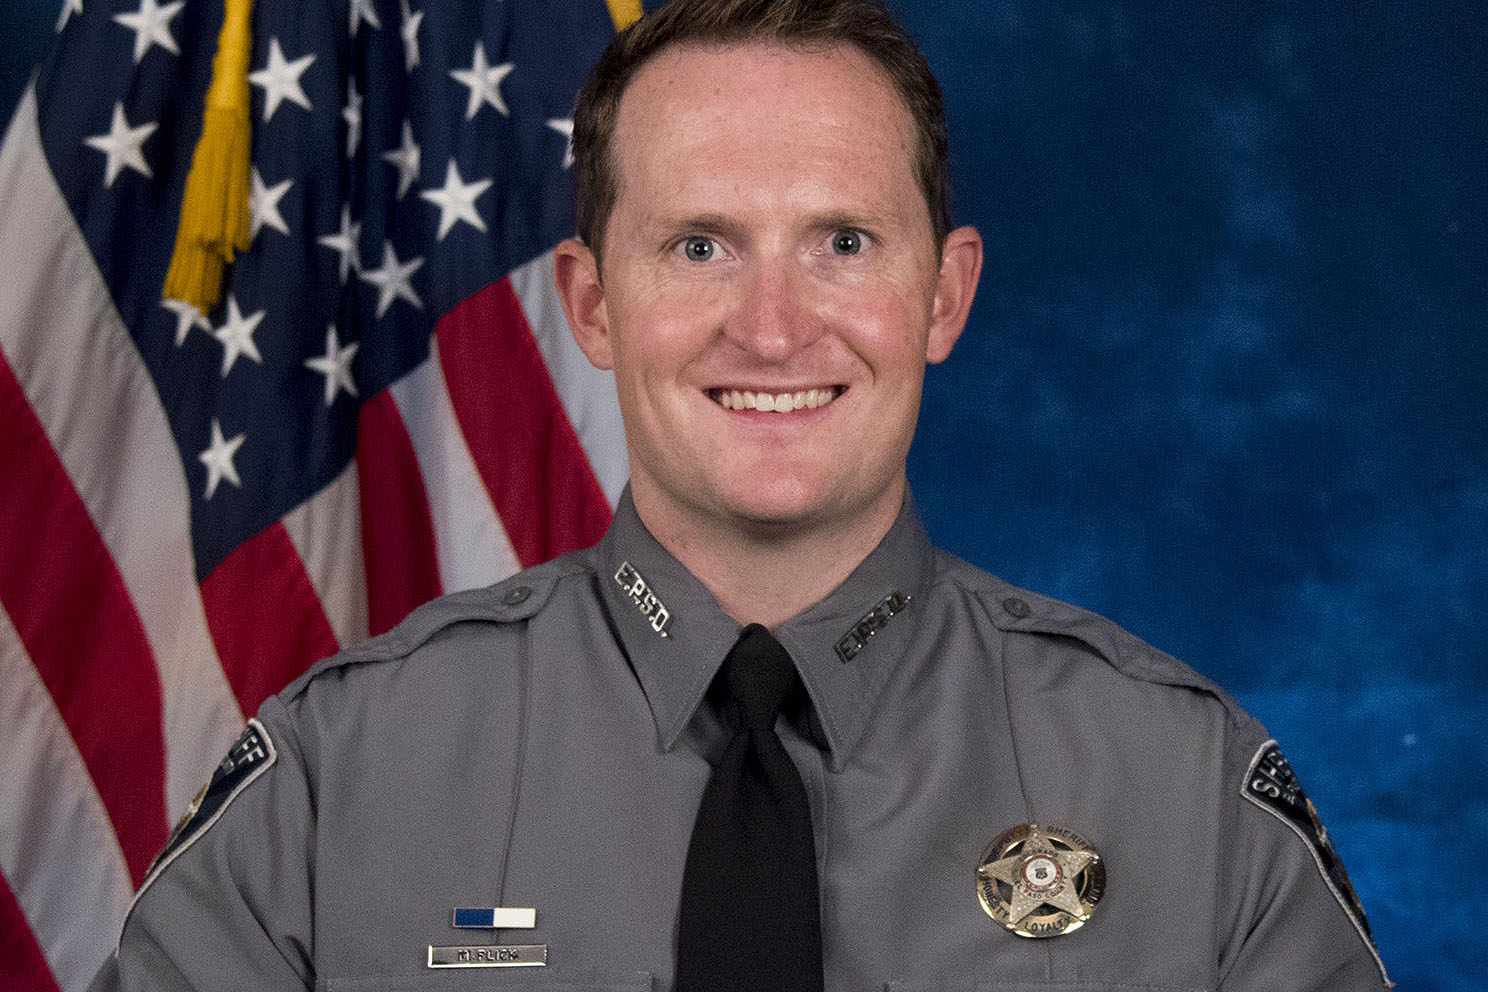 <p>Deputy Micah Flick, in a photo released Monday, Feb. 5, 2018 by the El Paso County Sheriff.</p>